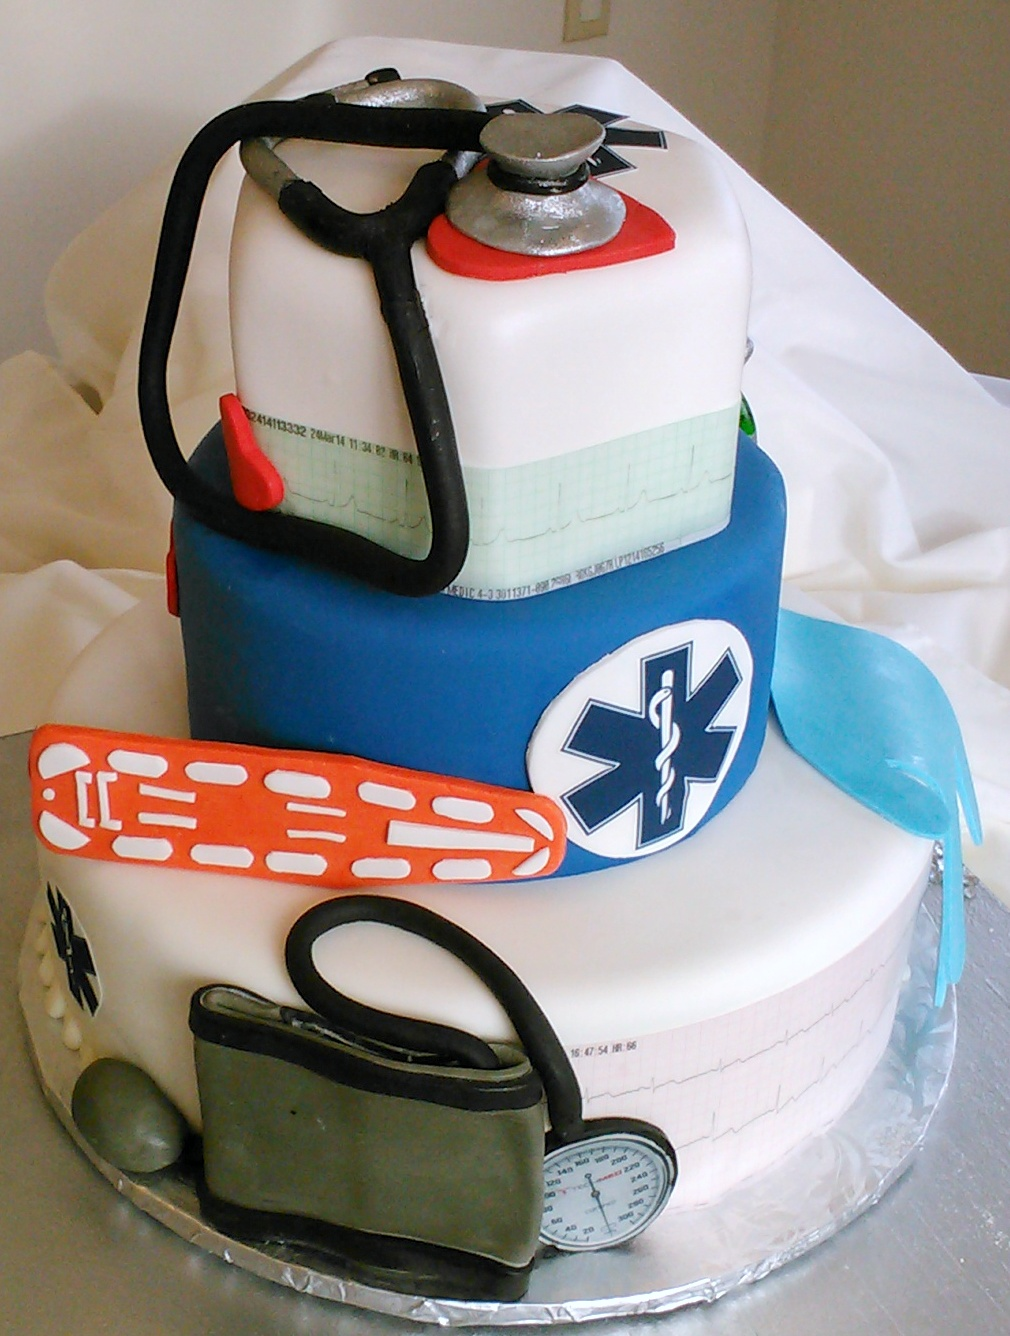 EMT Parametics three tier custom wedding cake with edible blood pressure cuff, glove, hearts, back board, Stethoscopes and oxygen tank. The Bride and Groom's heart beats are on edible EKG paper.jpg